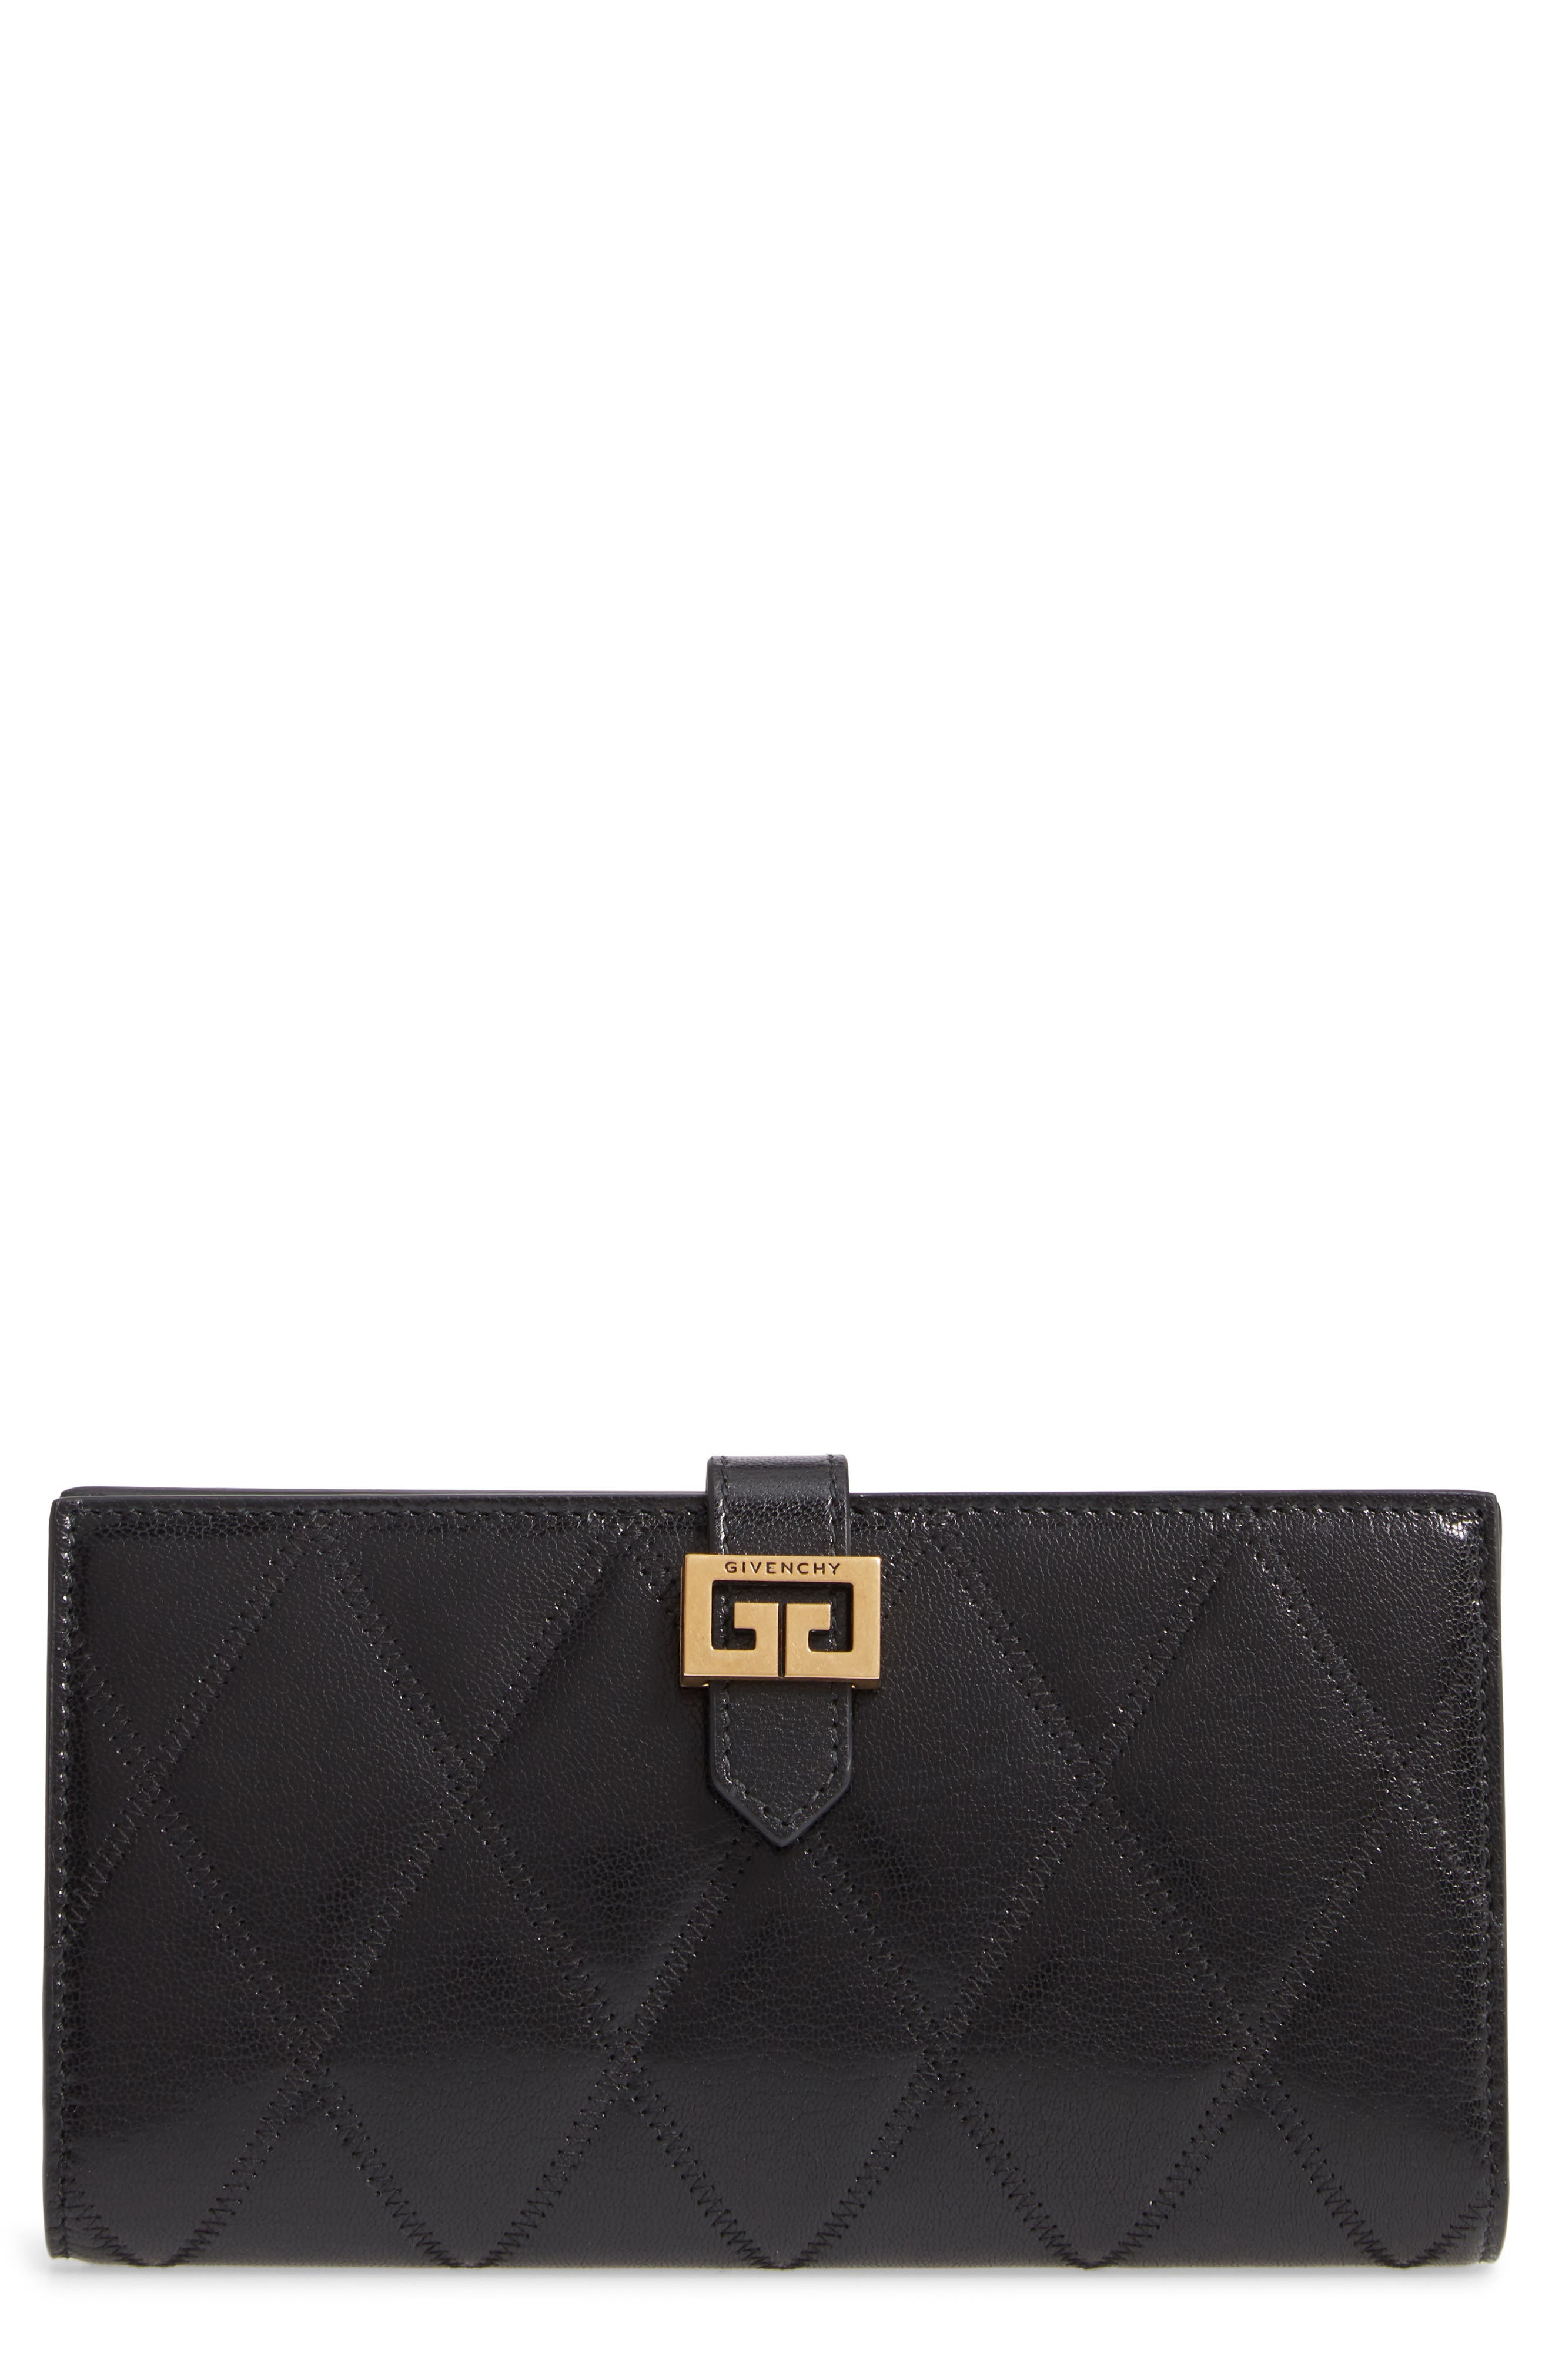 1678a172fc Givenchy Handbags   Wallets for Women